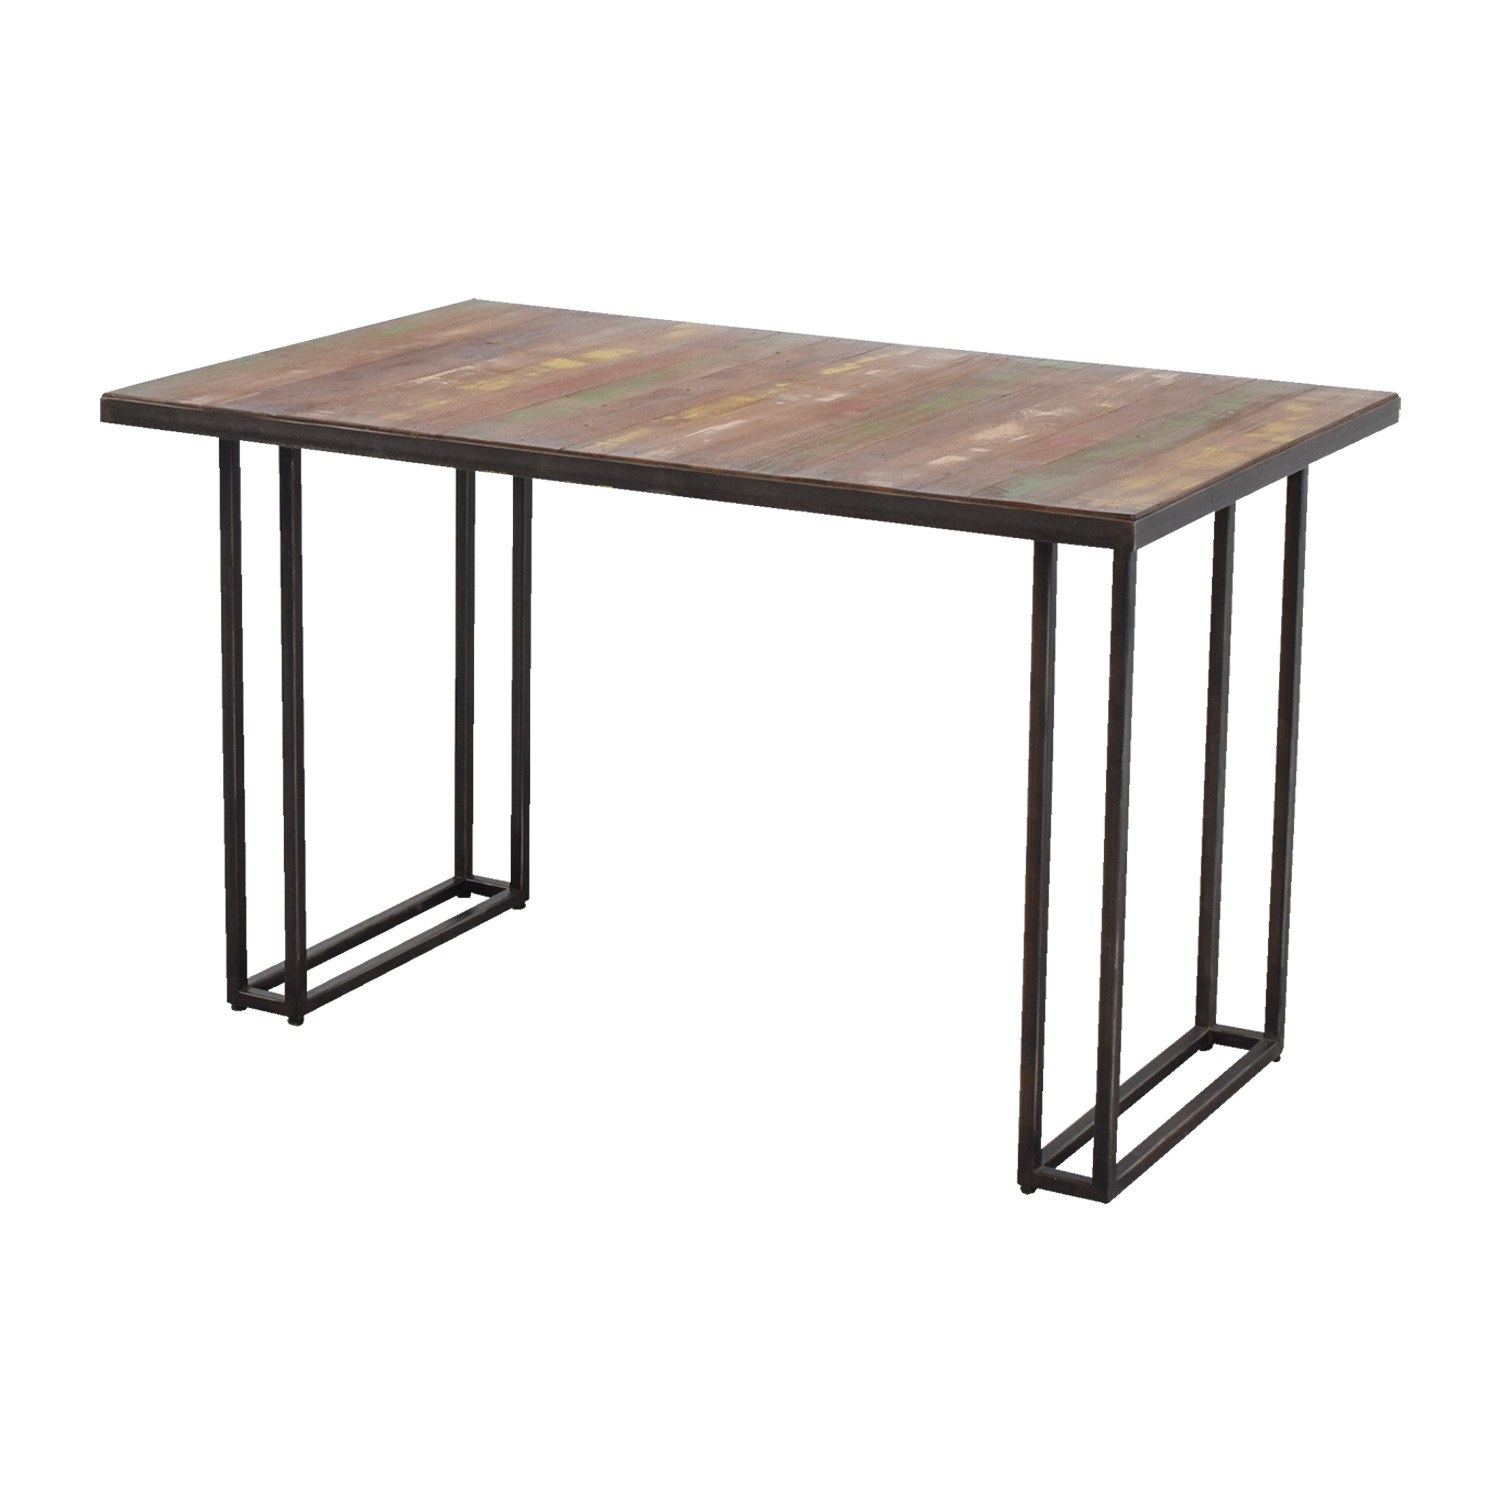 West Elm West Elm Wood & Colored Dining Table on sale